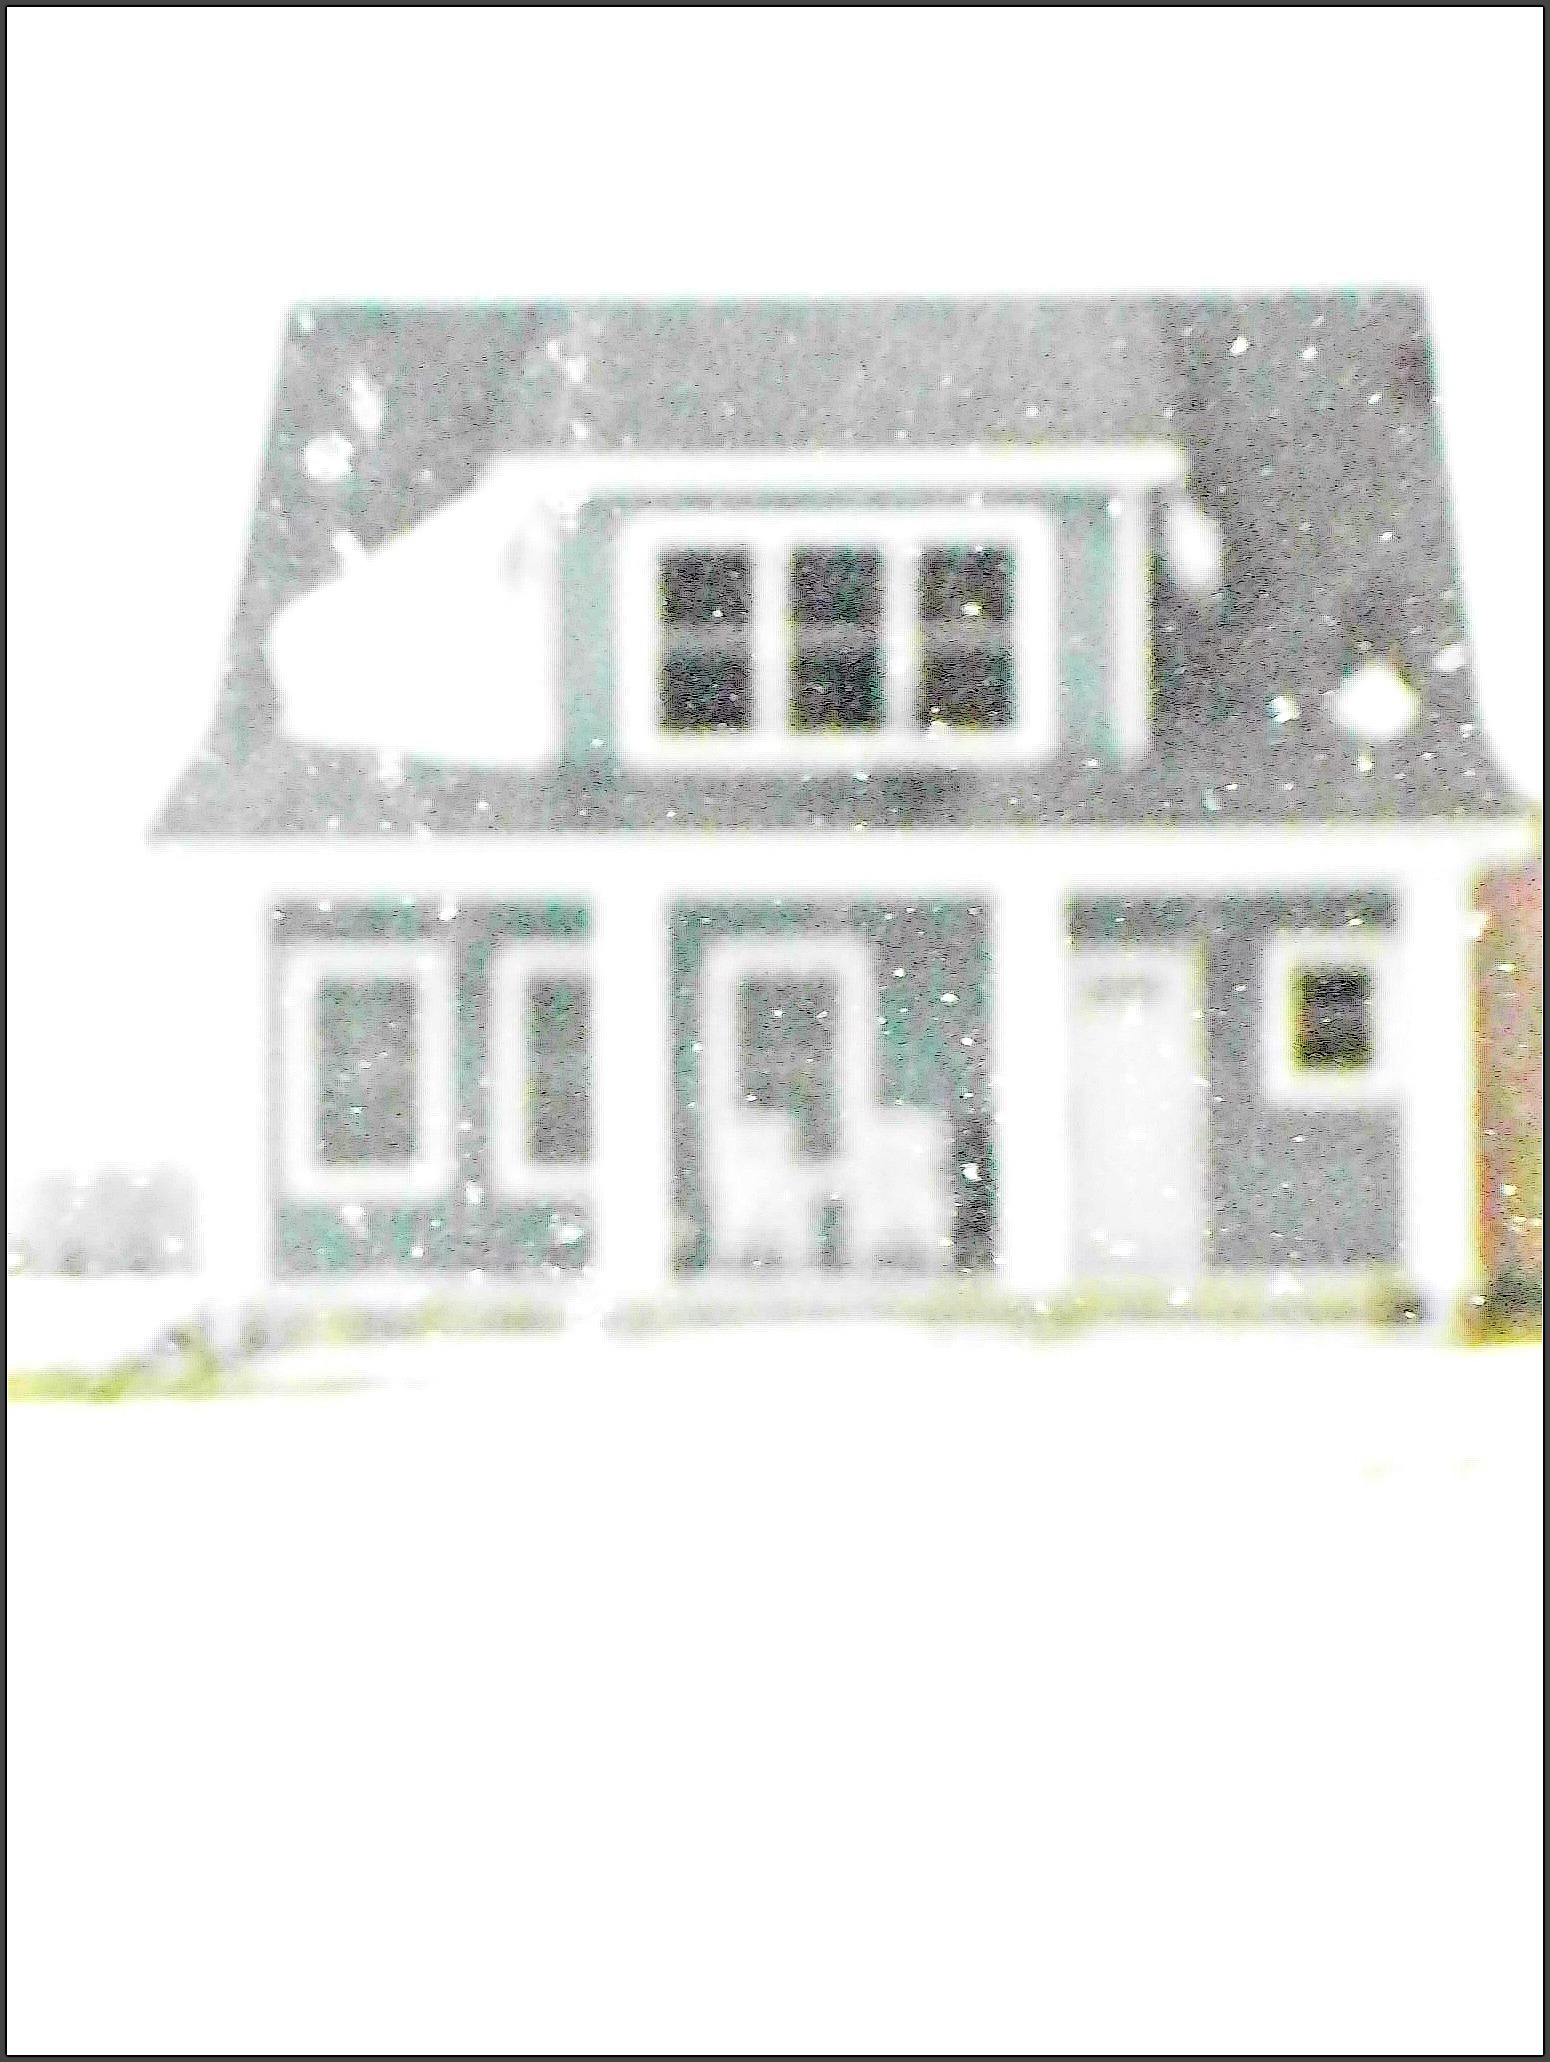 House in the Snow jan 28